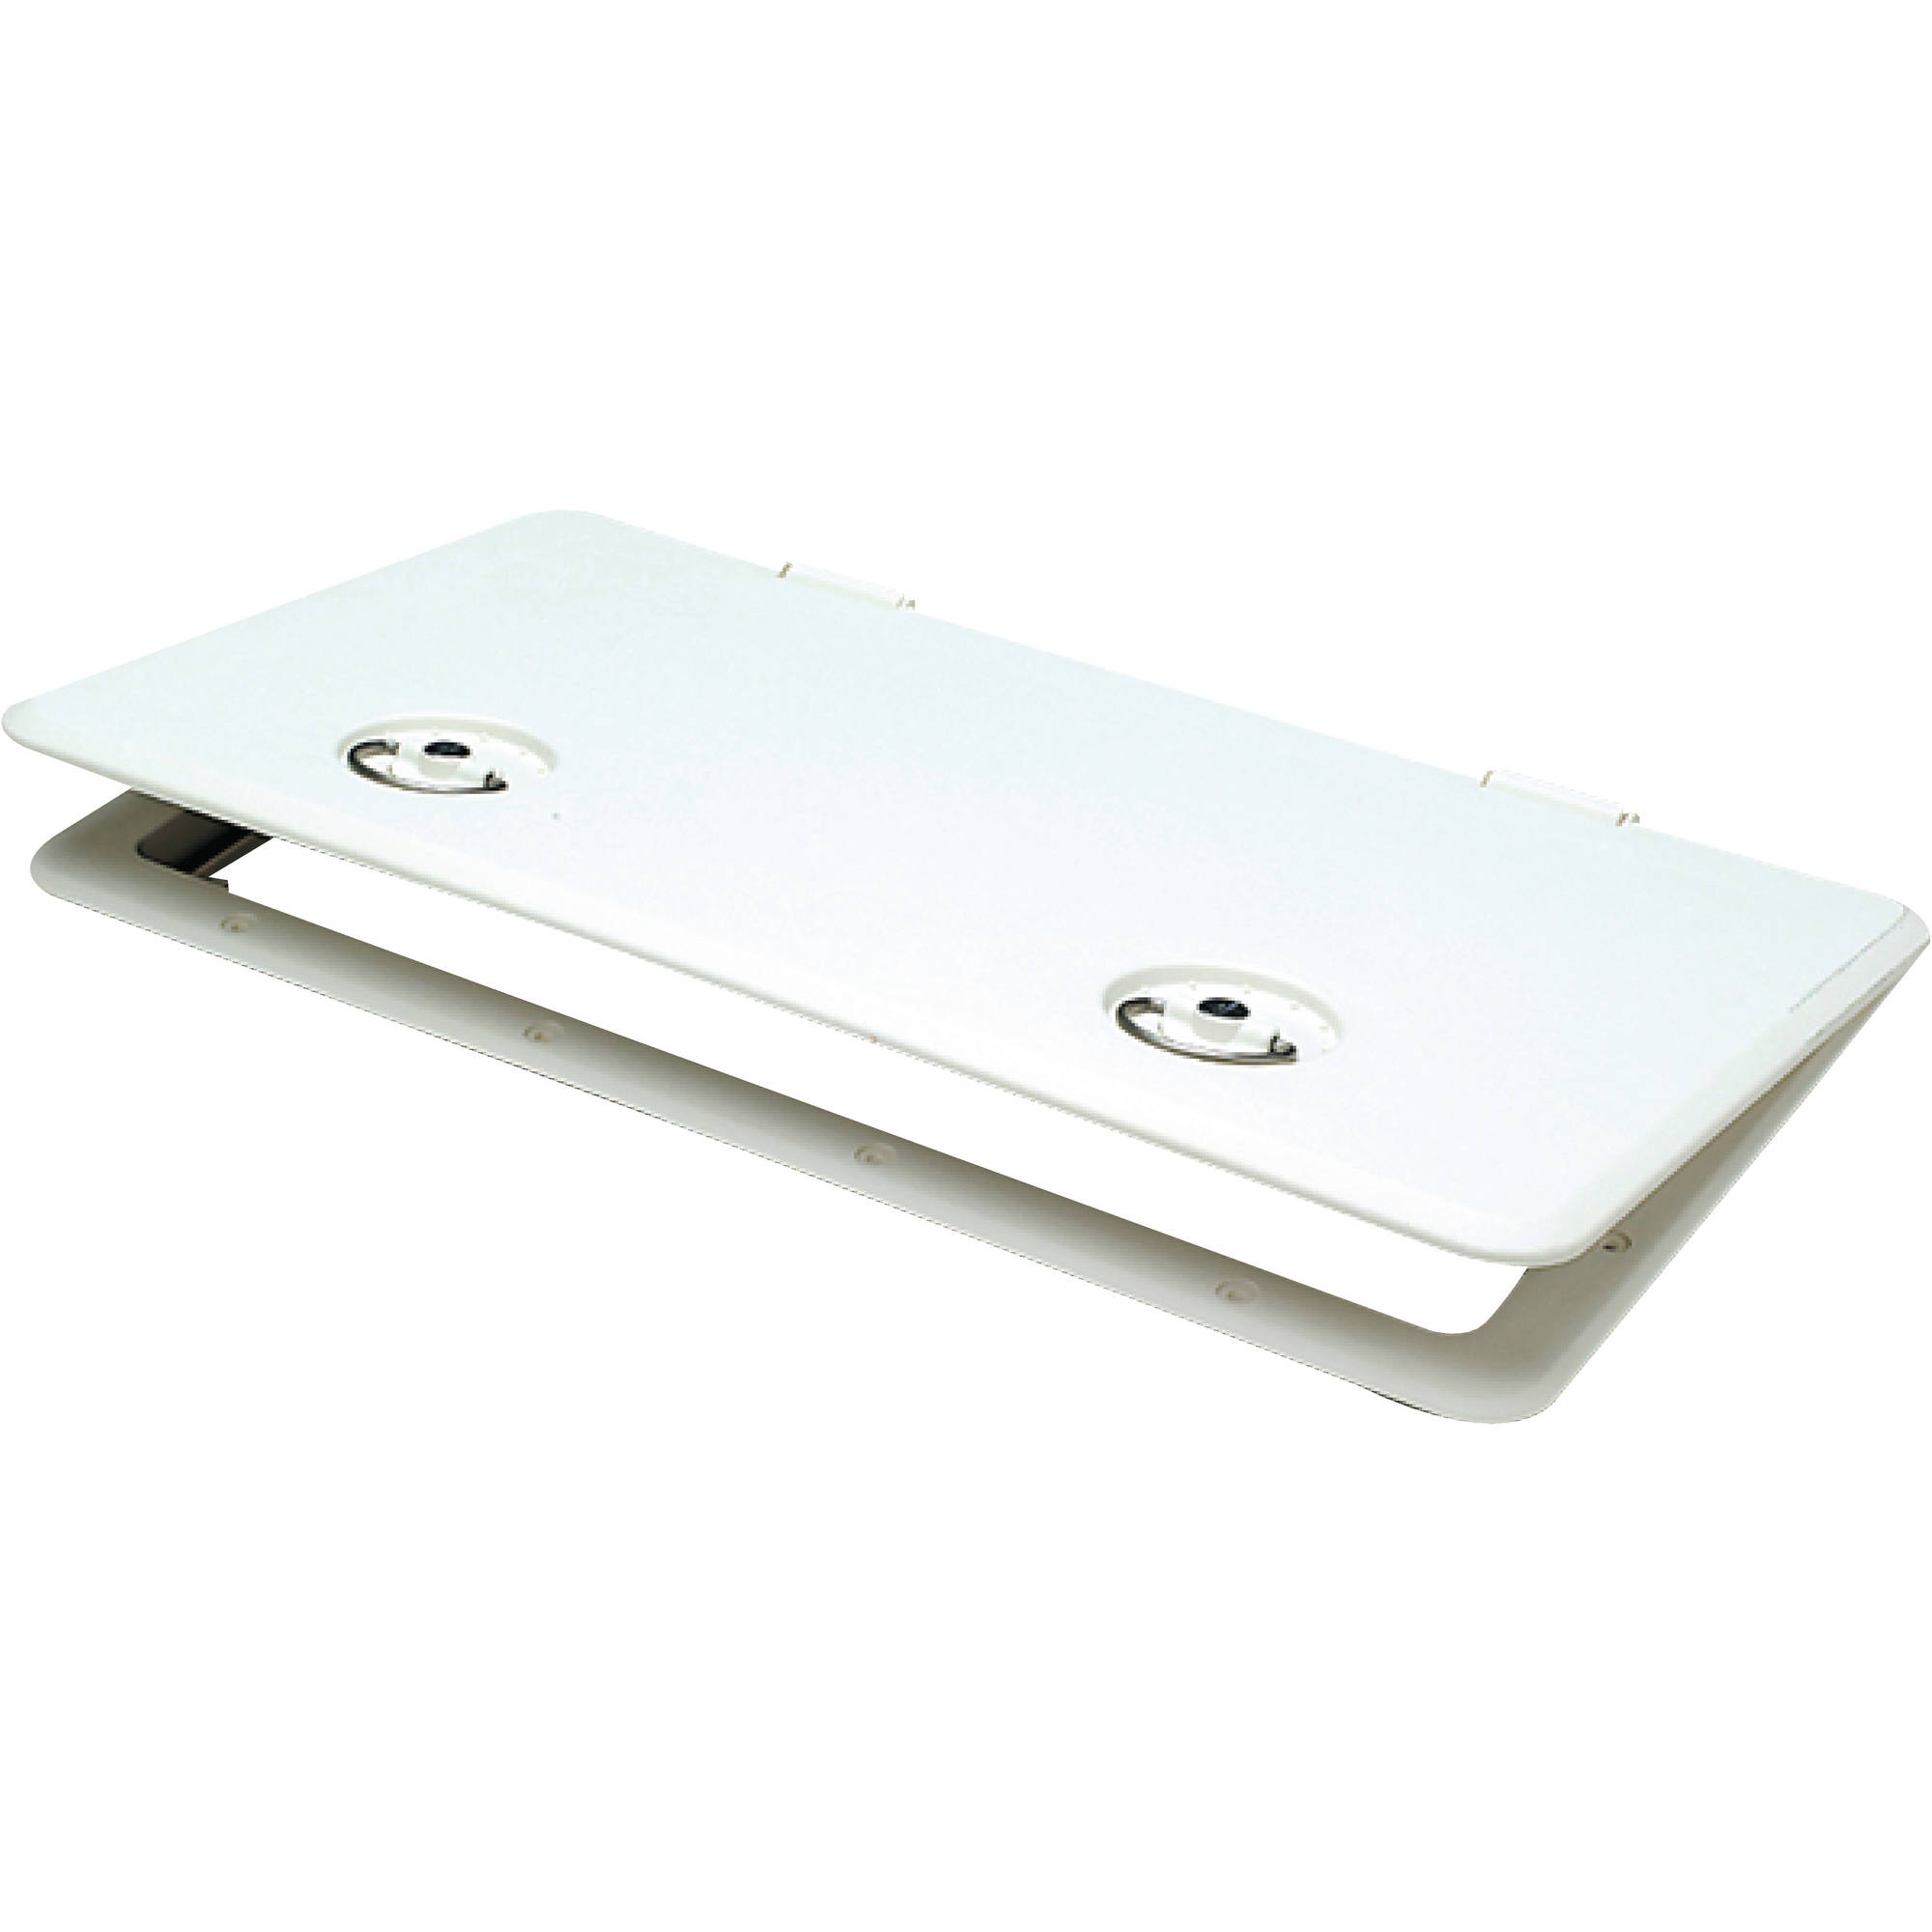 "Click here to buy T-H Marine Sure-Seal Locking Access Hatch, 13-1 4"" x 30-3 4"" by T-H Marine Supplies."